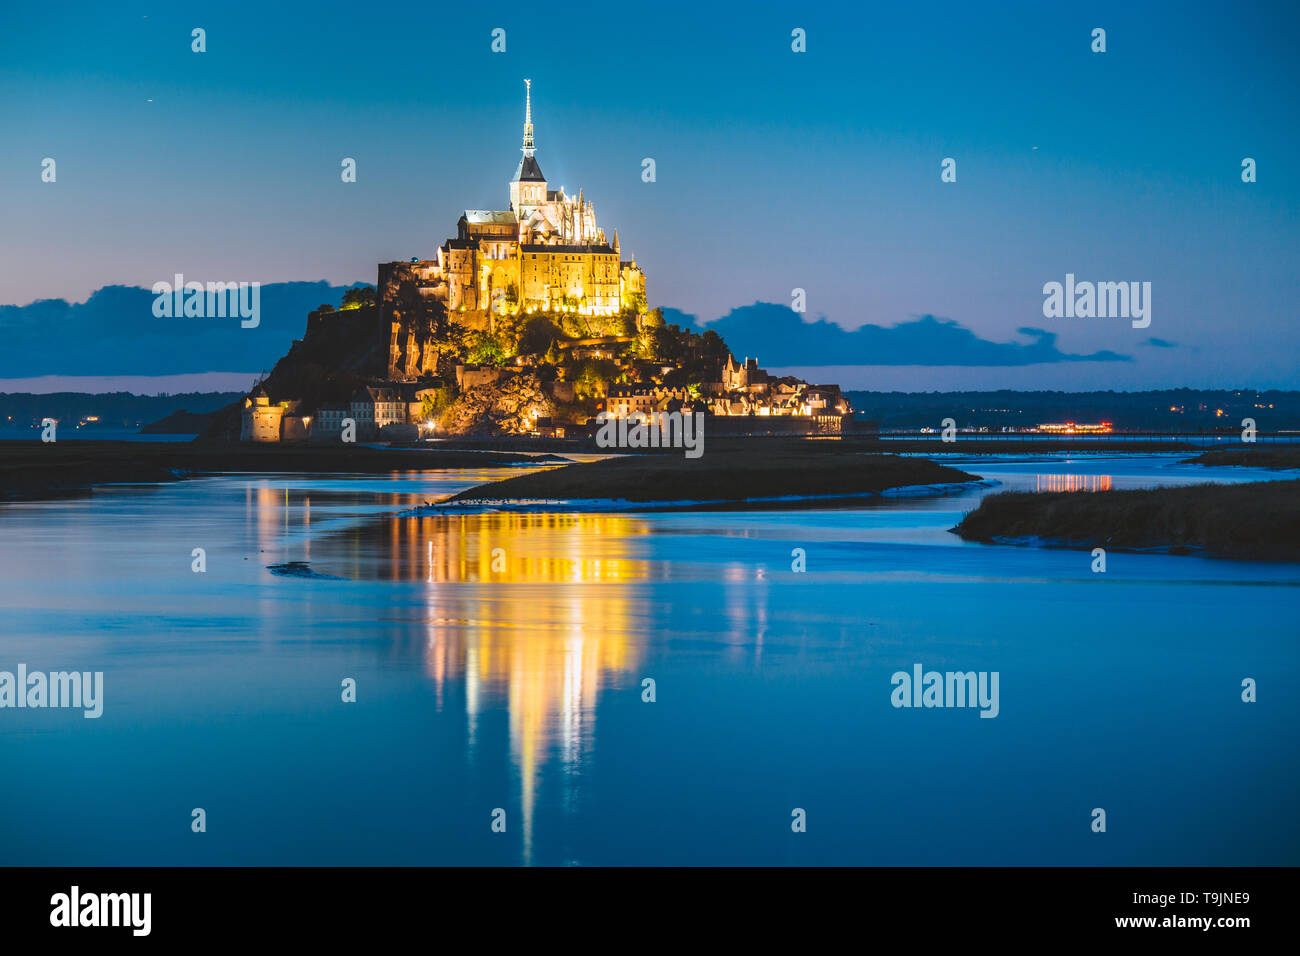 Classic view of famous Le Mont Saint-Michel tidal island in beautiful twilight during blue hour at dusk, Normandy, northern France - Stock Image